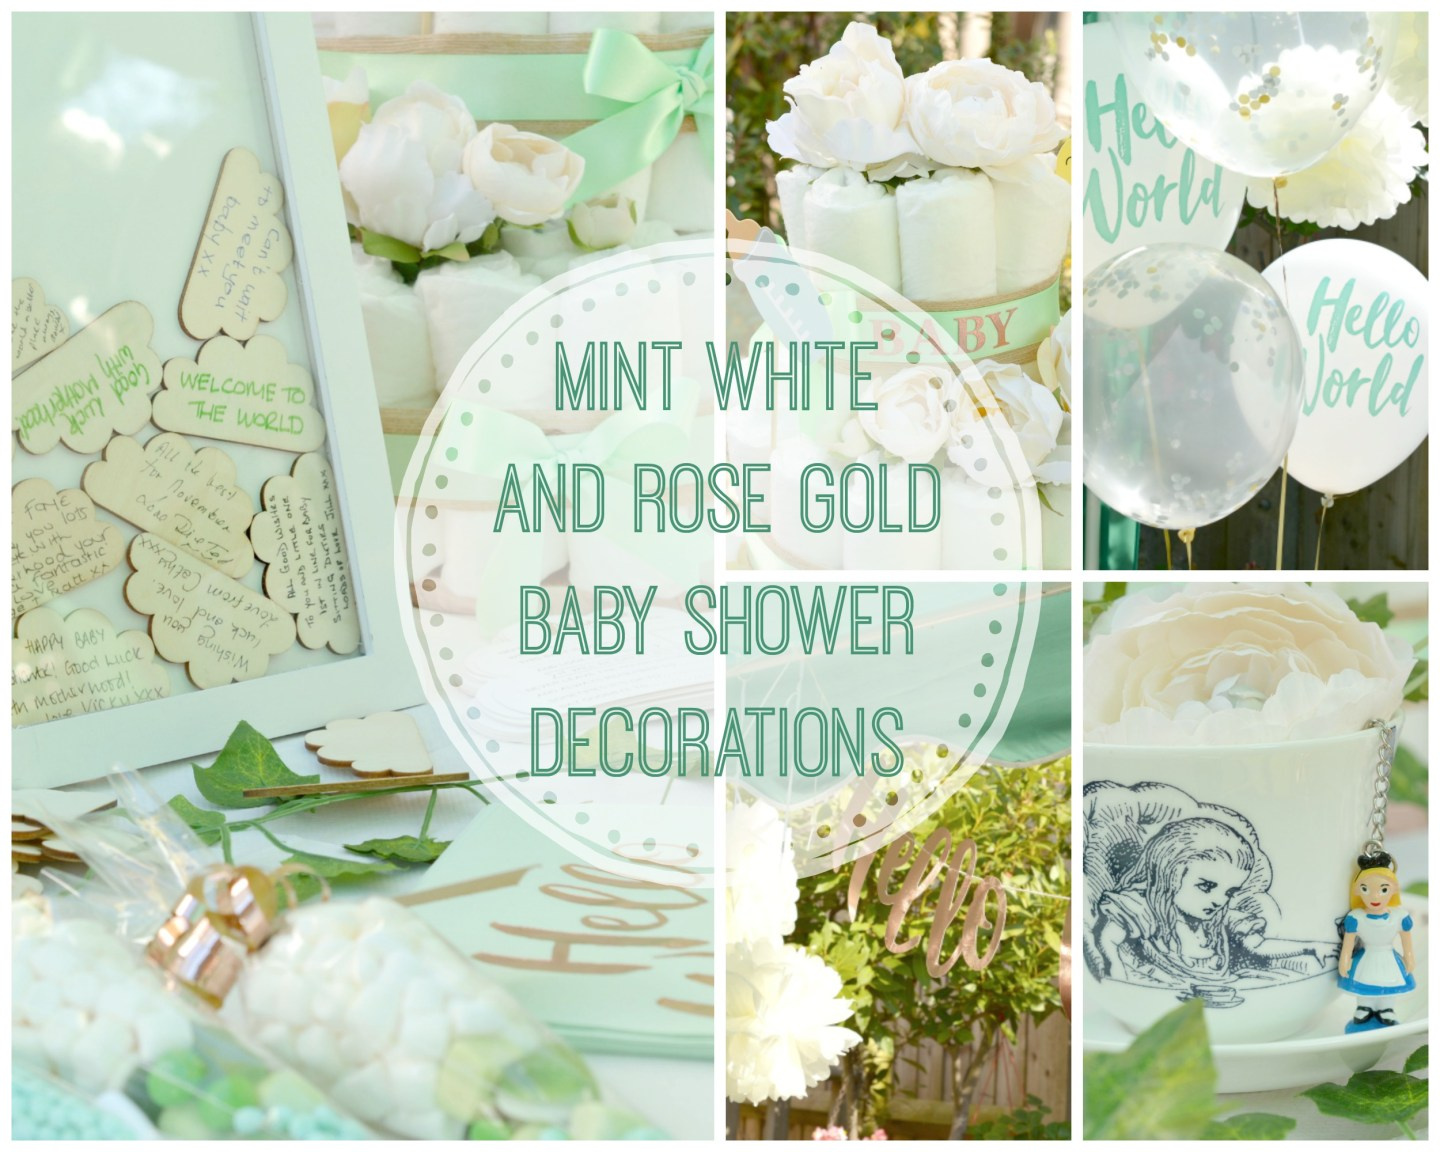 BABY SHOWER – Mint, White and Rose Gold Themed Decorations